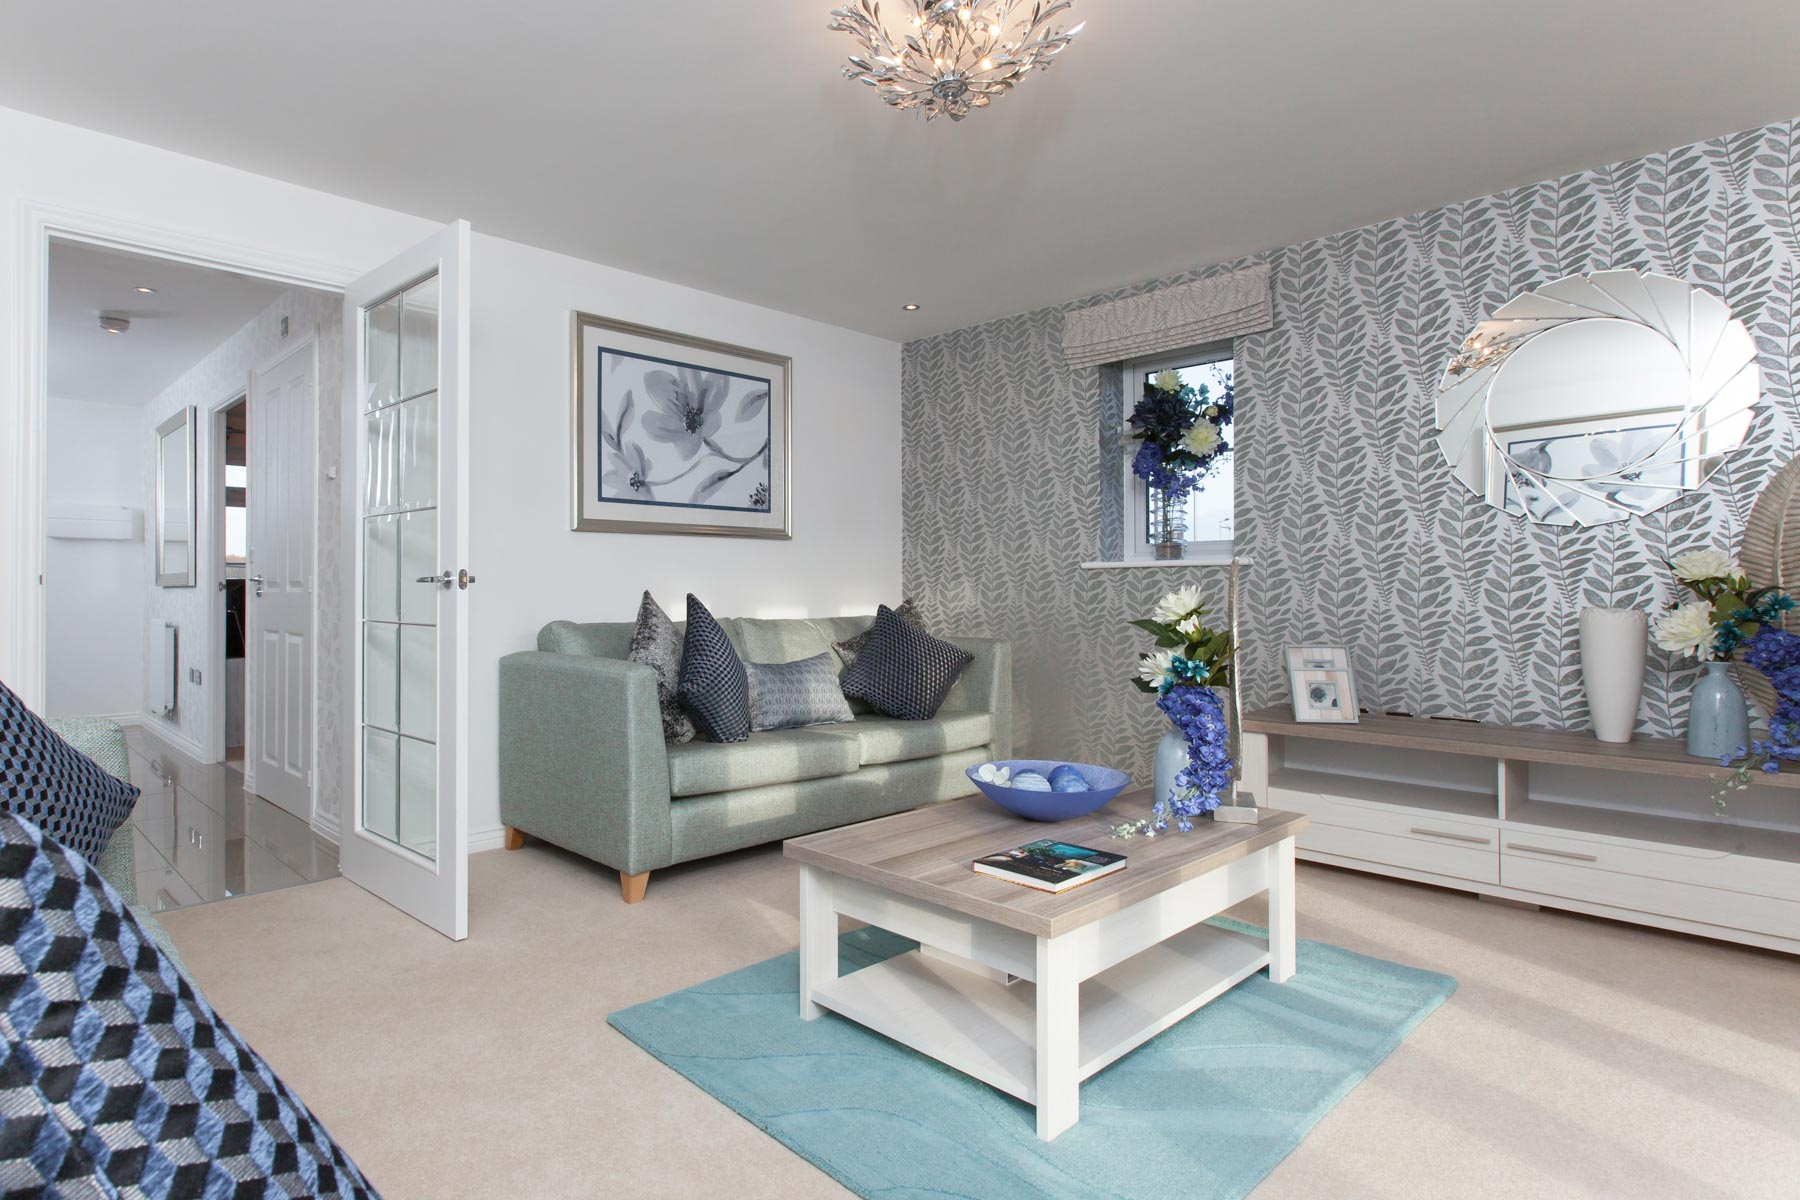 TW Exeter - Cornflowers at Cranbrook - Thornford example living room 2